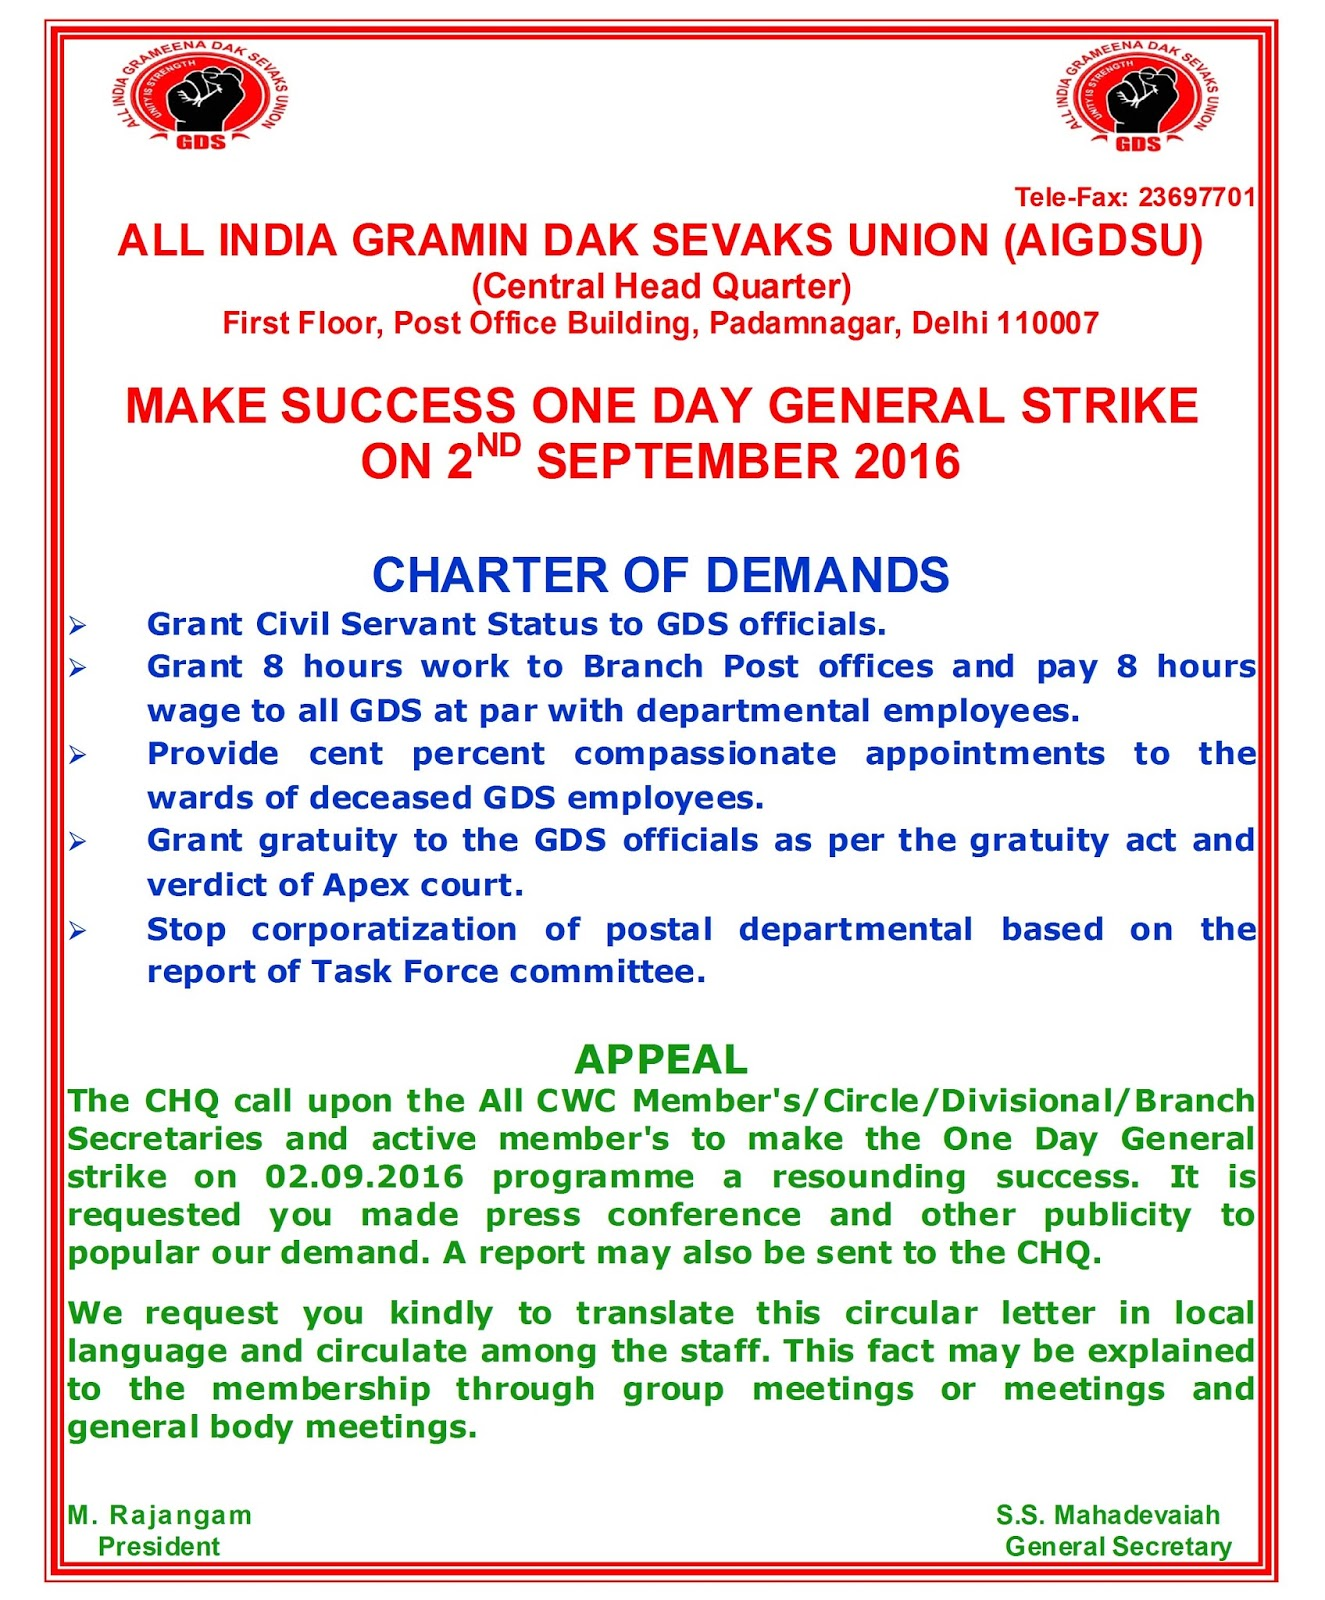 RURAL POSTAL EMPLOYEES: MAKE SUCCESS ONE DAY GENERAL